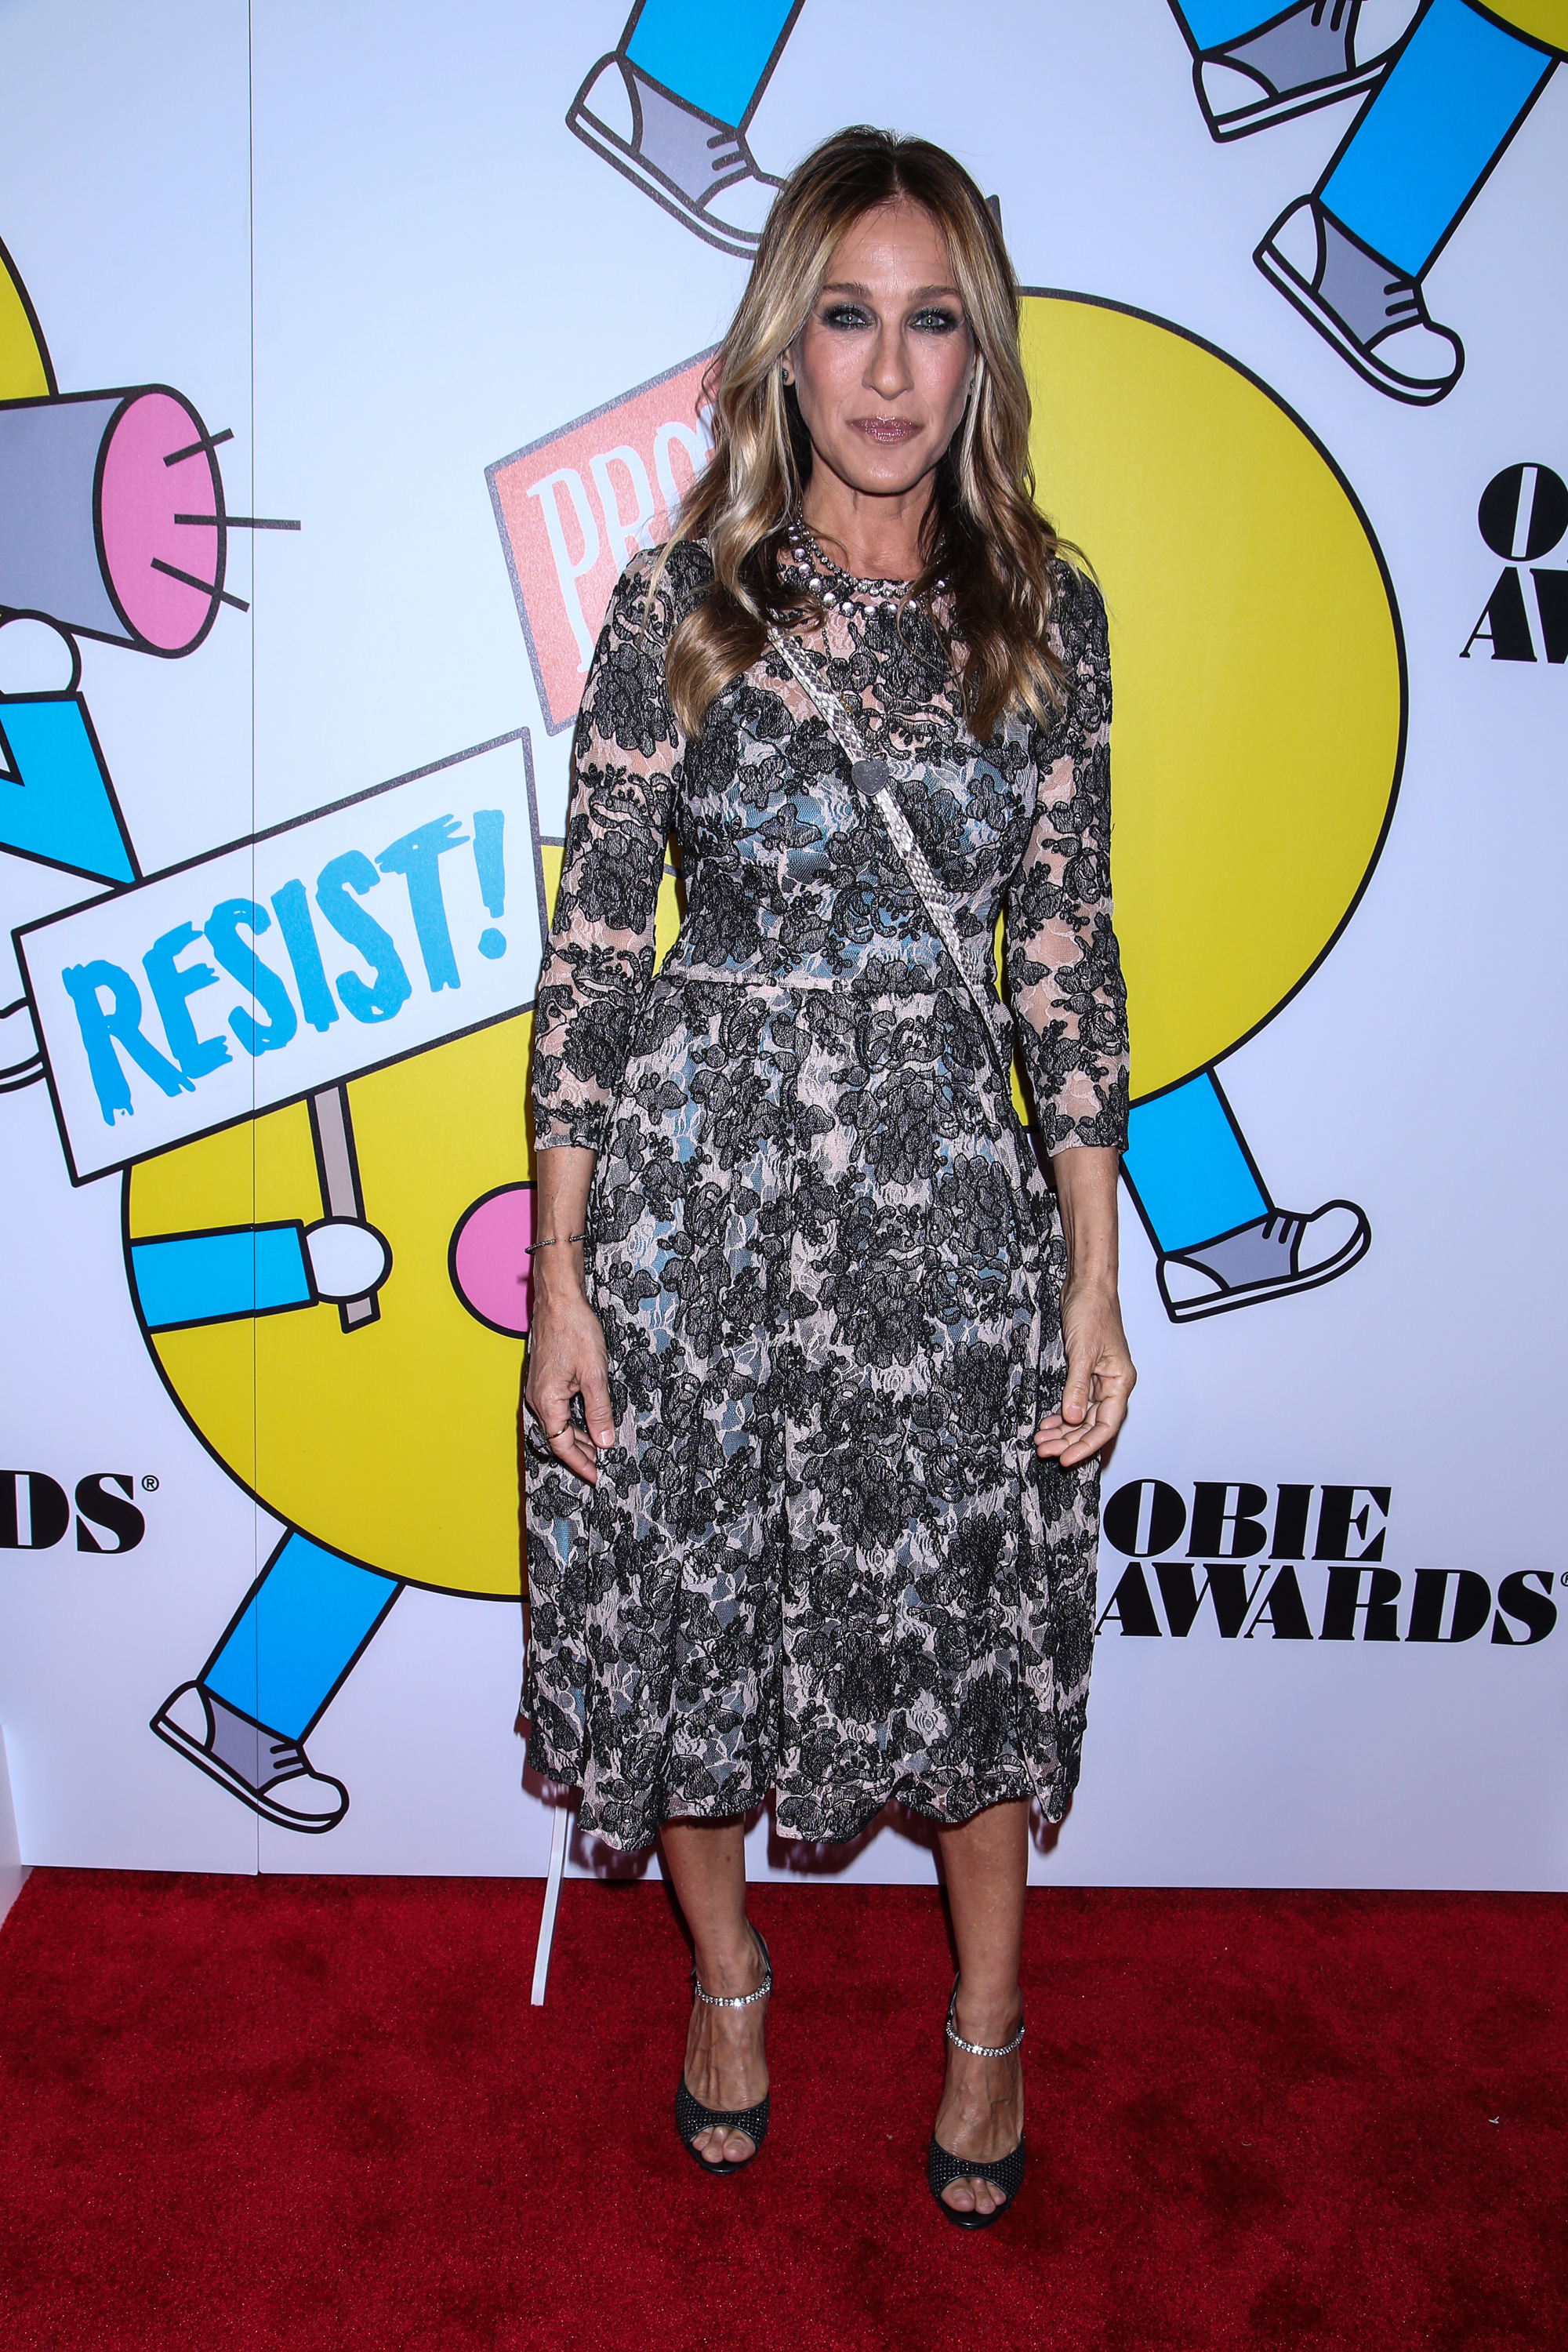 62nd Annual OBIE Awards held at Webster Hall - Arrivals.                                    Featuring: Sarah Jessica Parker                  Where: New York, New York, United States                  When: 22 May 2017                  Credit: Joseph Marzullo/WENN.com                                    **No Contact Music**